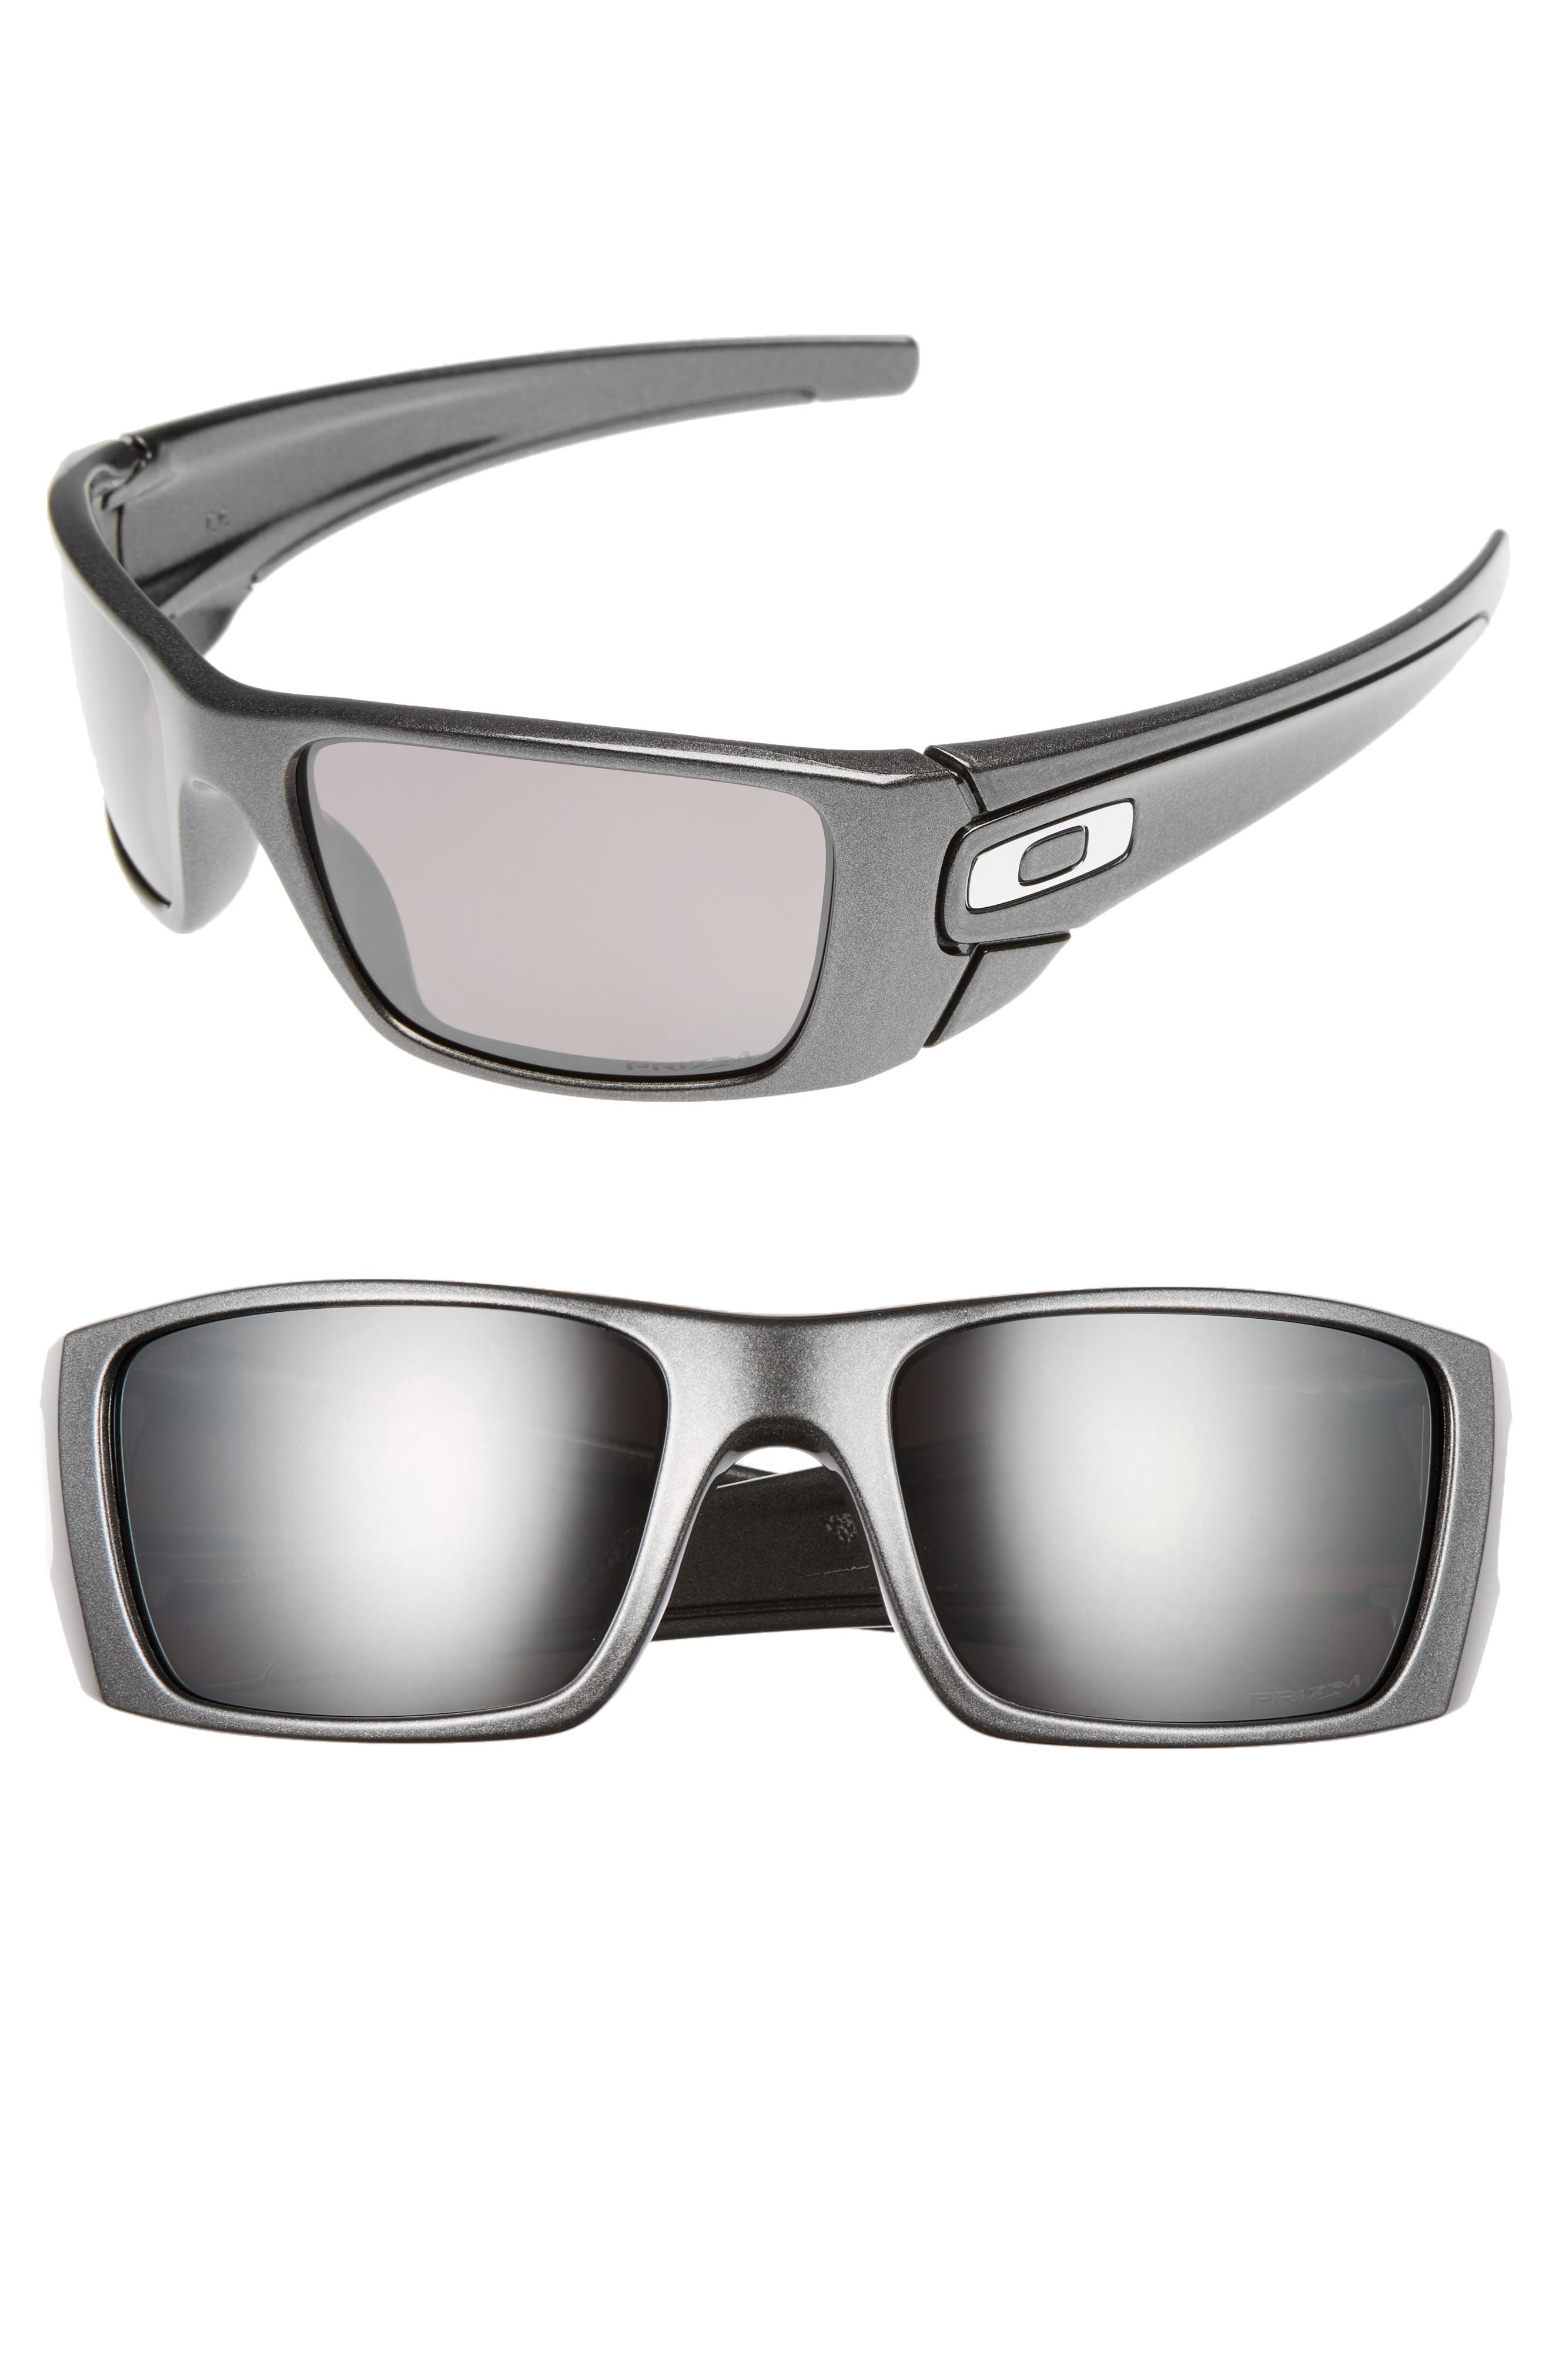 Fuel Cell 60mm Polarized Sunglasses,                             Main thumbnail 1, color,                             Grey